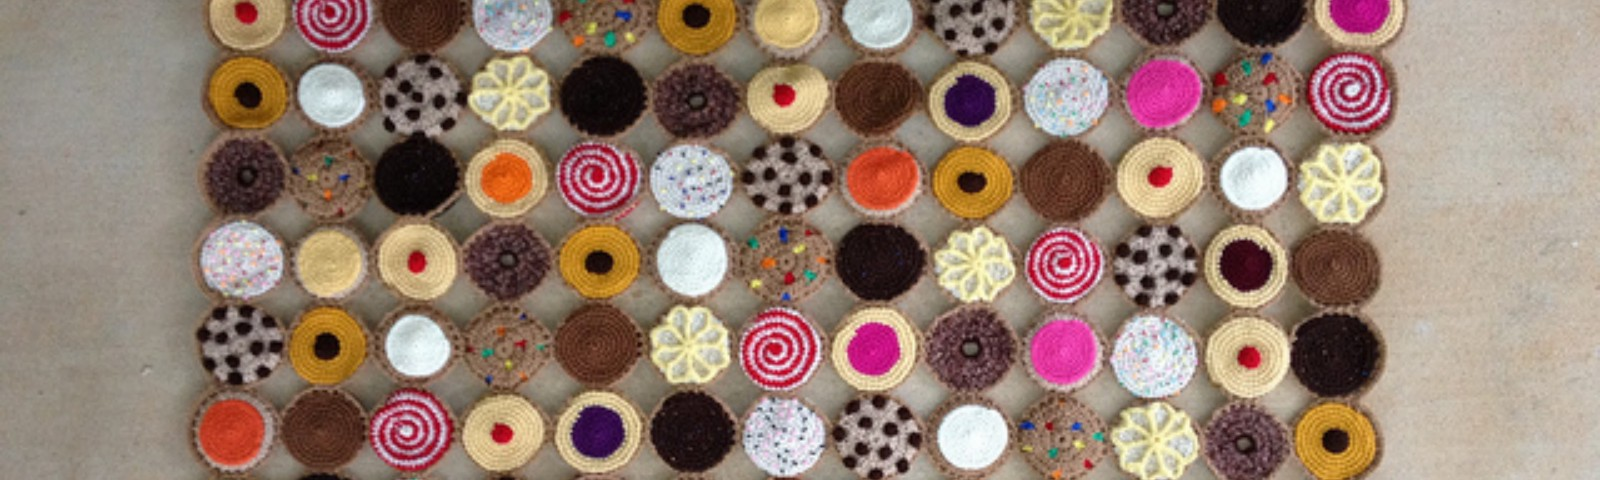 One-hundred and sixty-nine crochet cookies arranged and joined to form a square crochet blanket